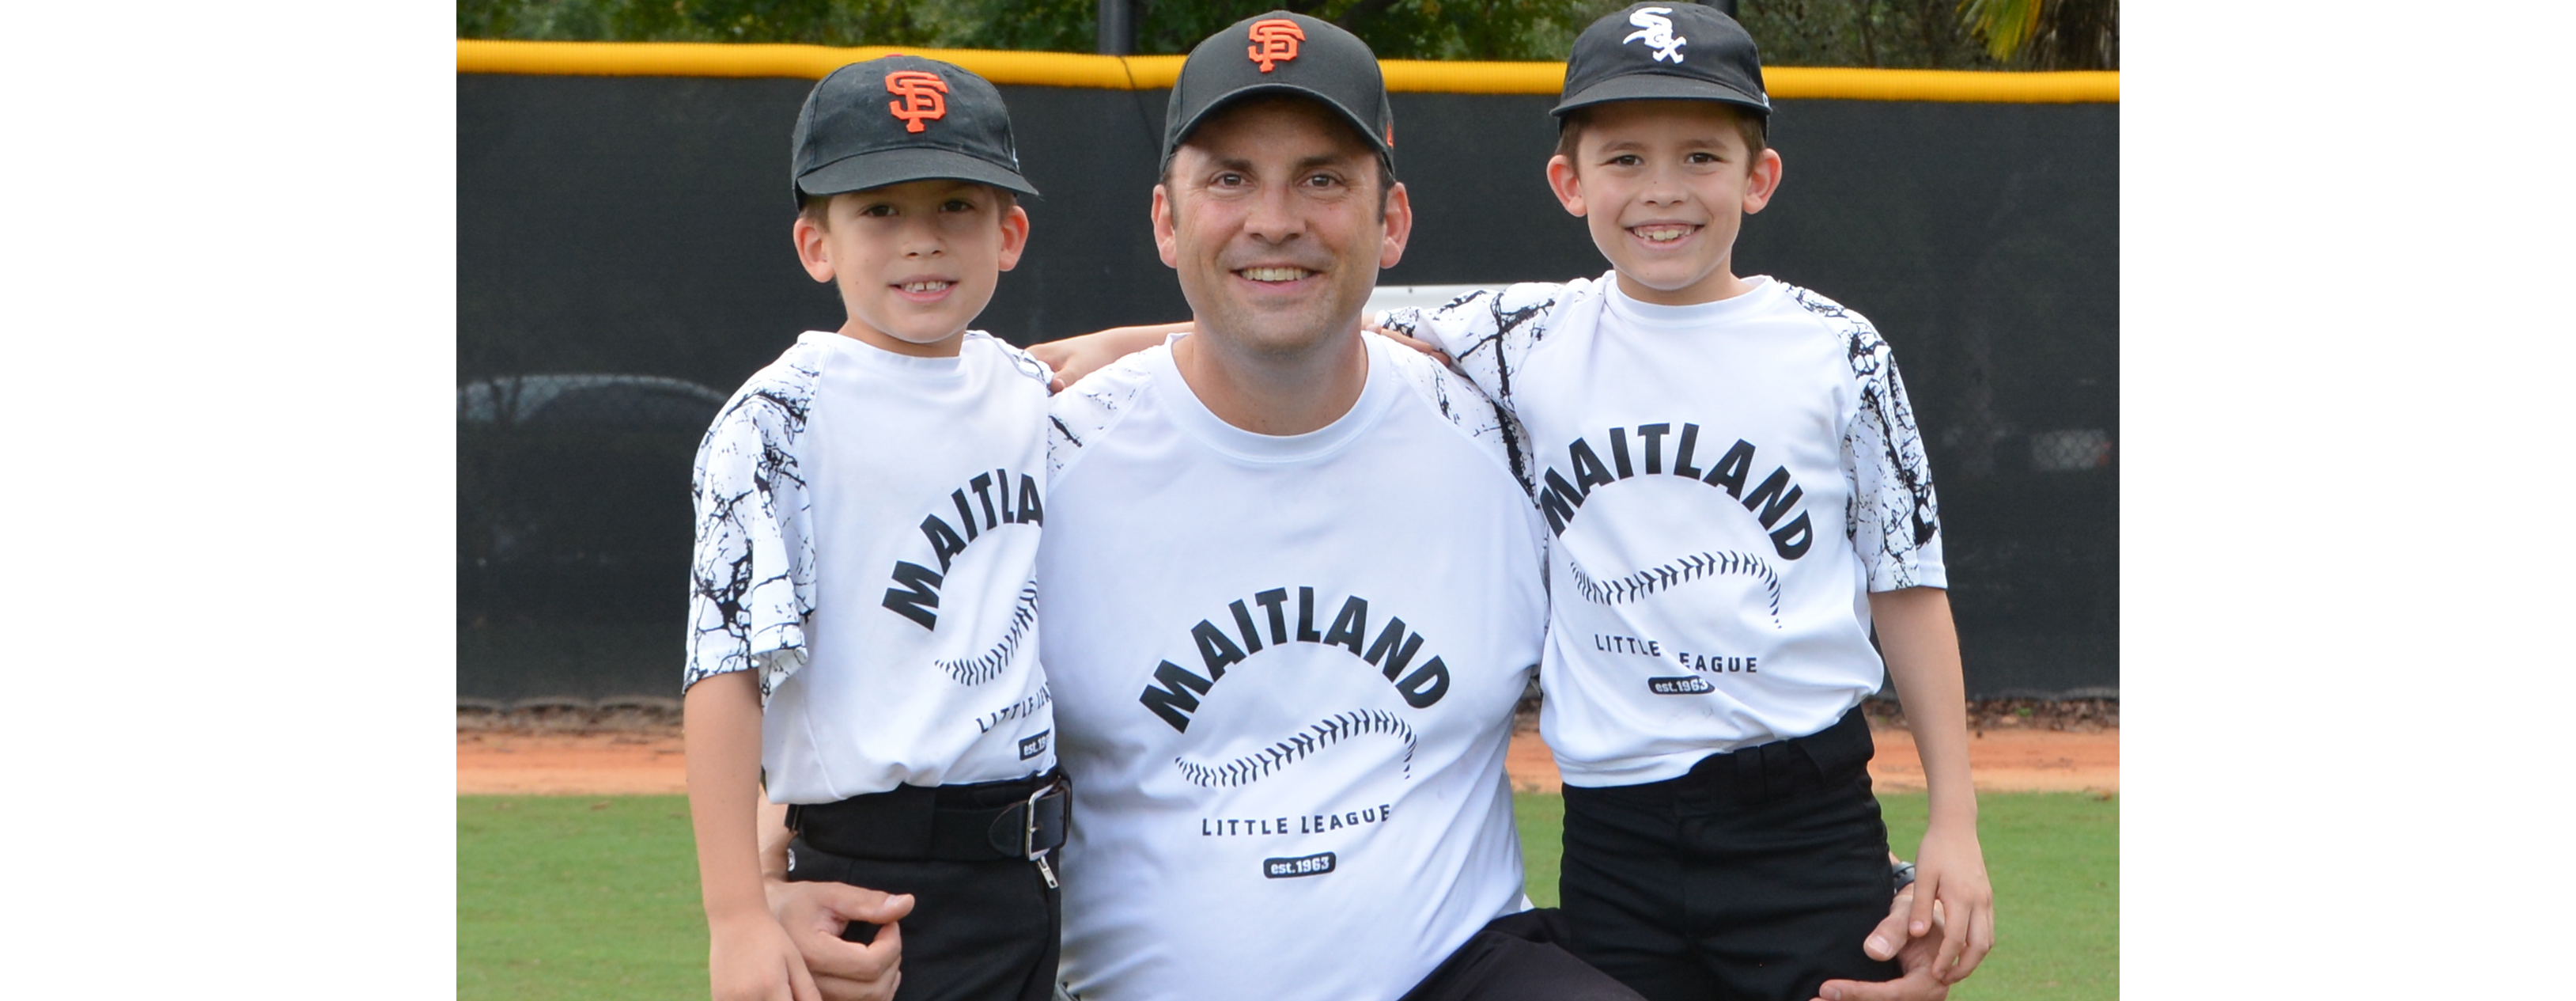 Judge Willis is pictured on the field with two young baseball players